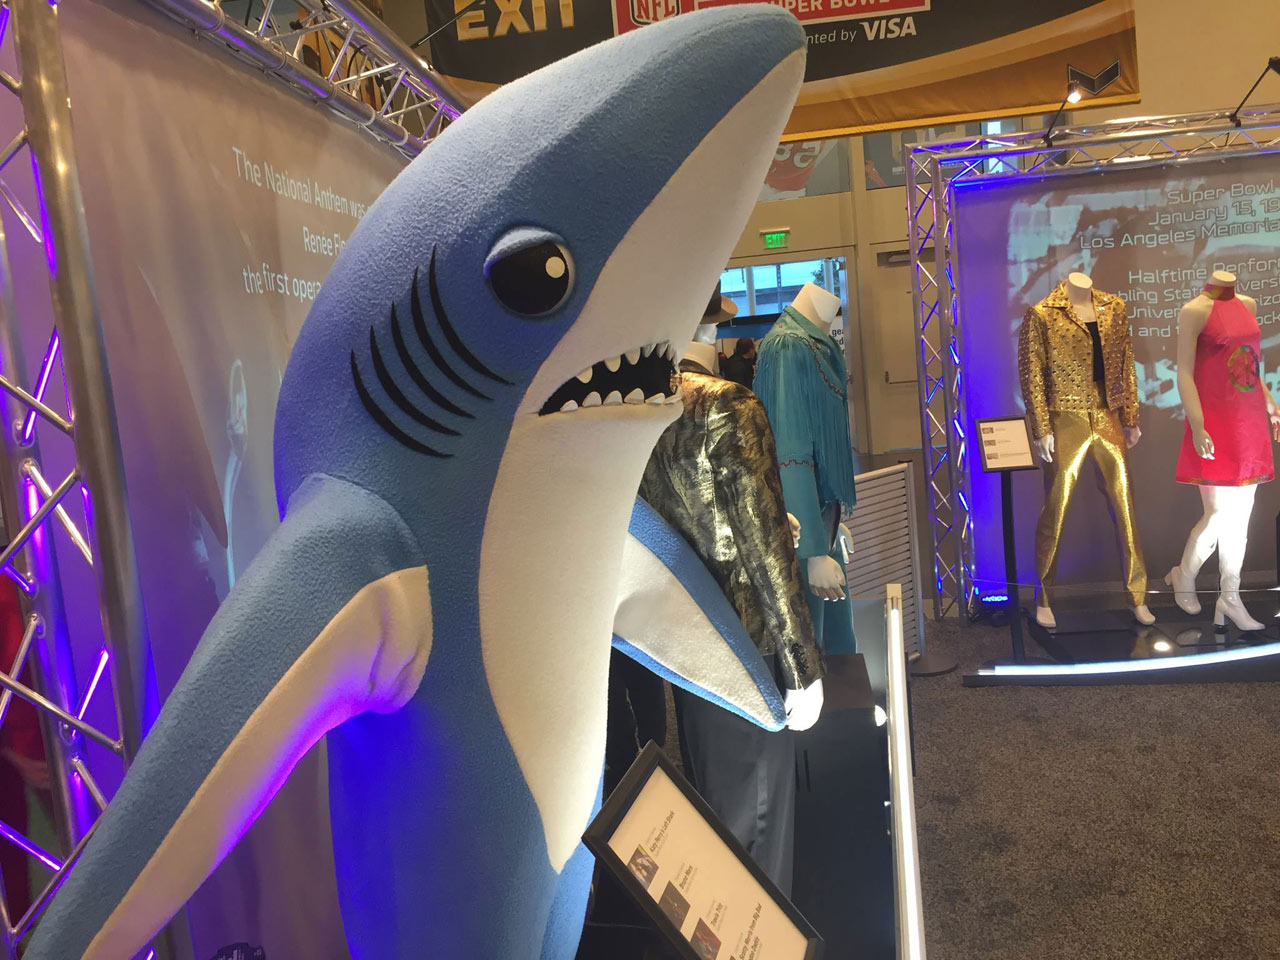 <div class='meta'><div class='origin-logo' data-origin='none'></div><span class='caption-text' data-credit='KGO-TV'>Shark from Katy Perry halftime show at Super Bowl, as seen at NFL experience in San Francisco, Sunday, January 31, 2016.</span></div>